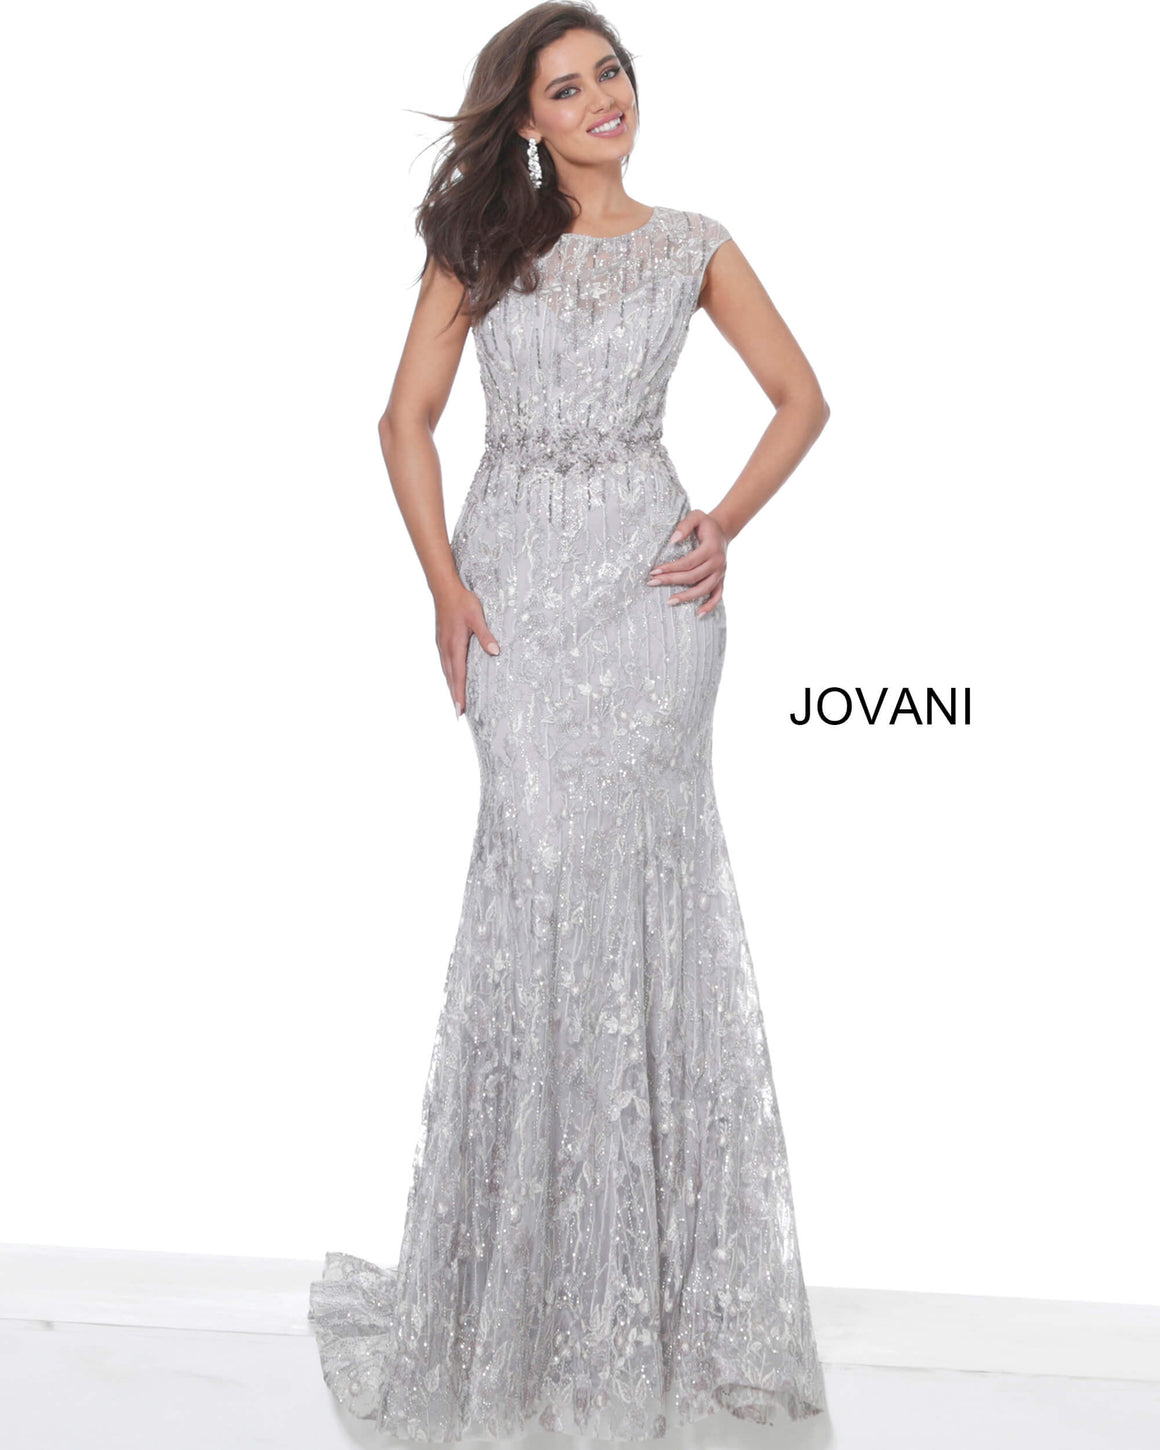 Jovani 05339 Light Purple Cap Sleeve Embellished Evening Dress